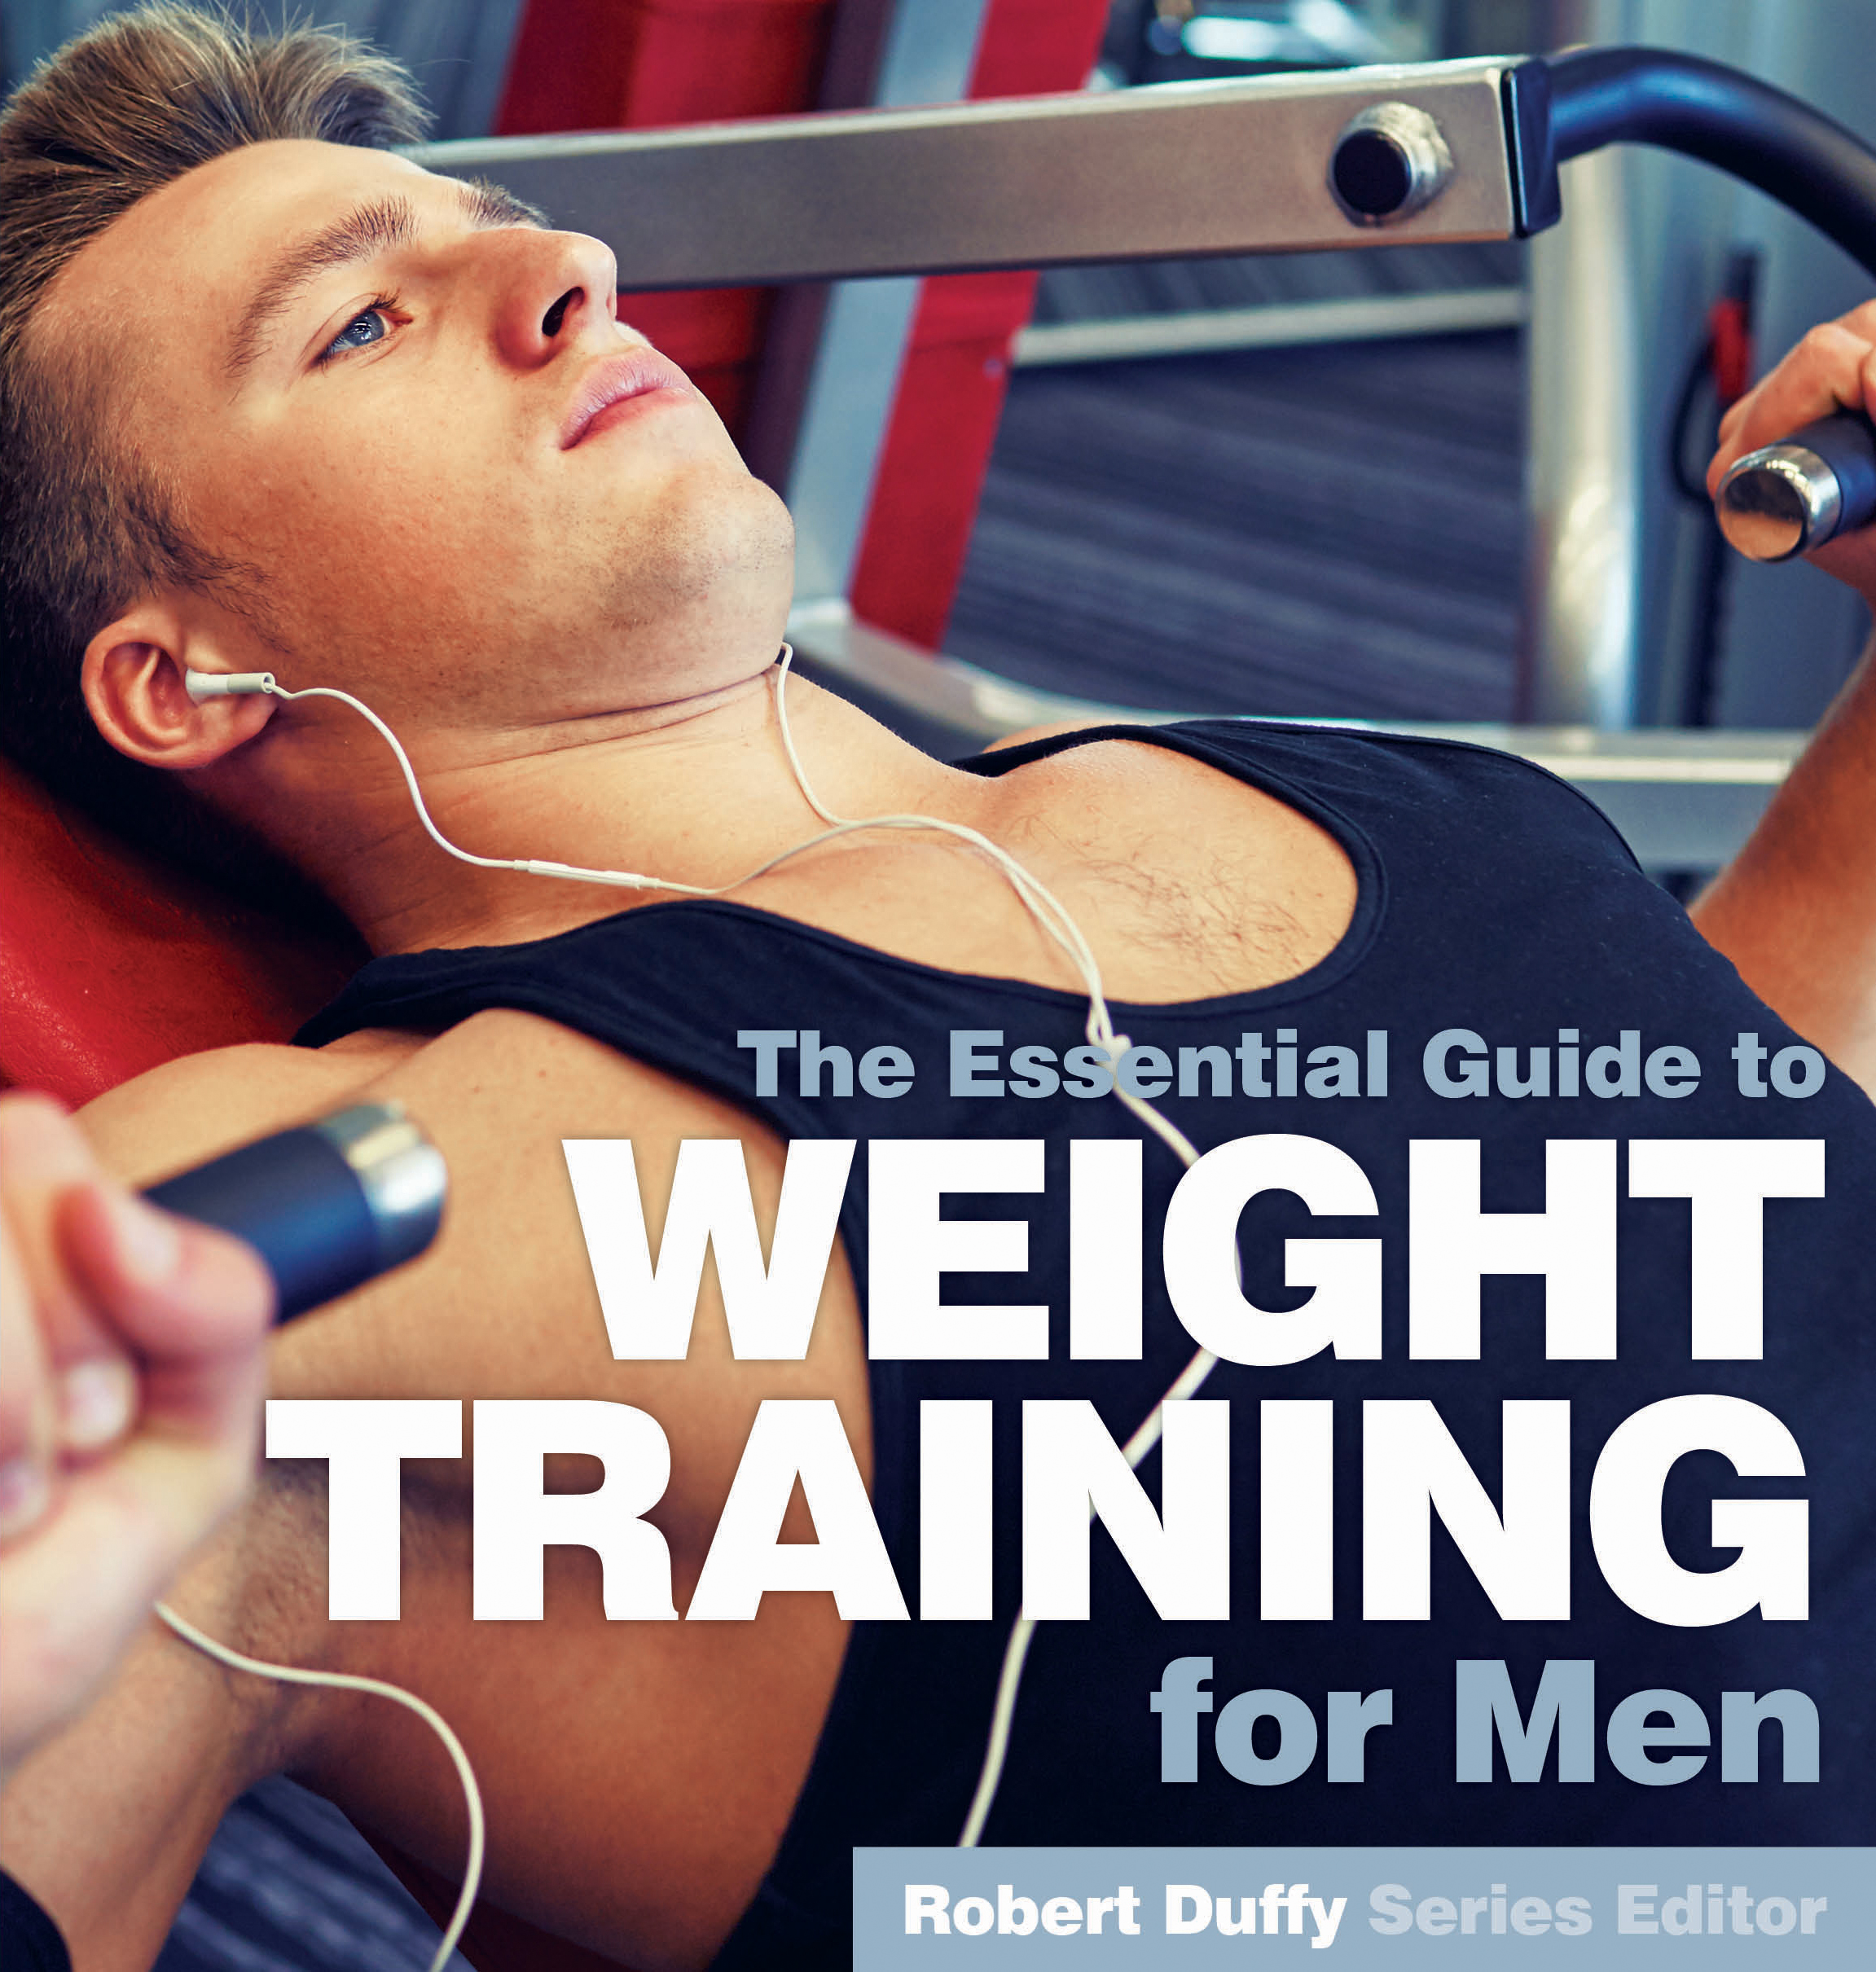 The Essential Guide To Weight Training For Men